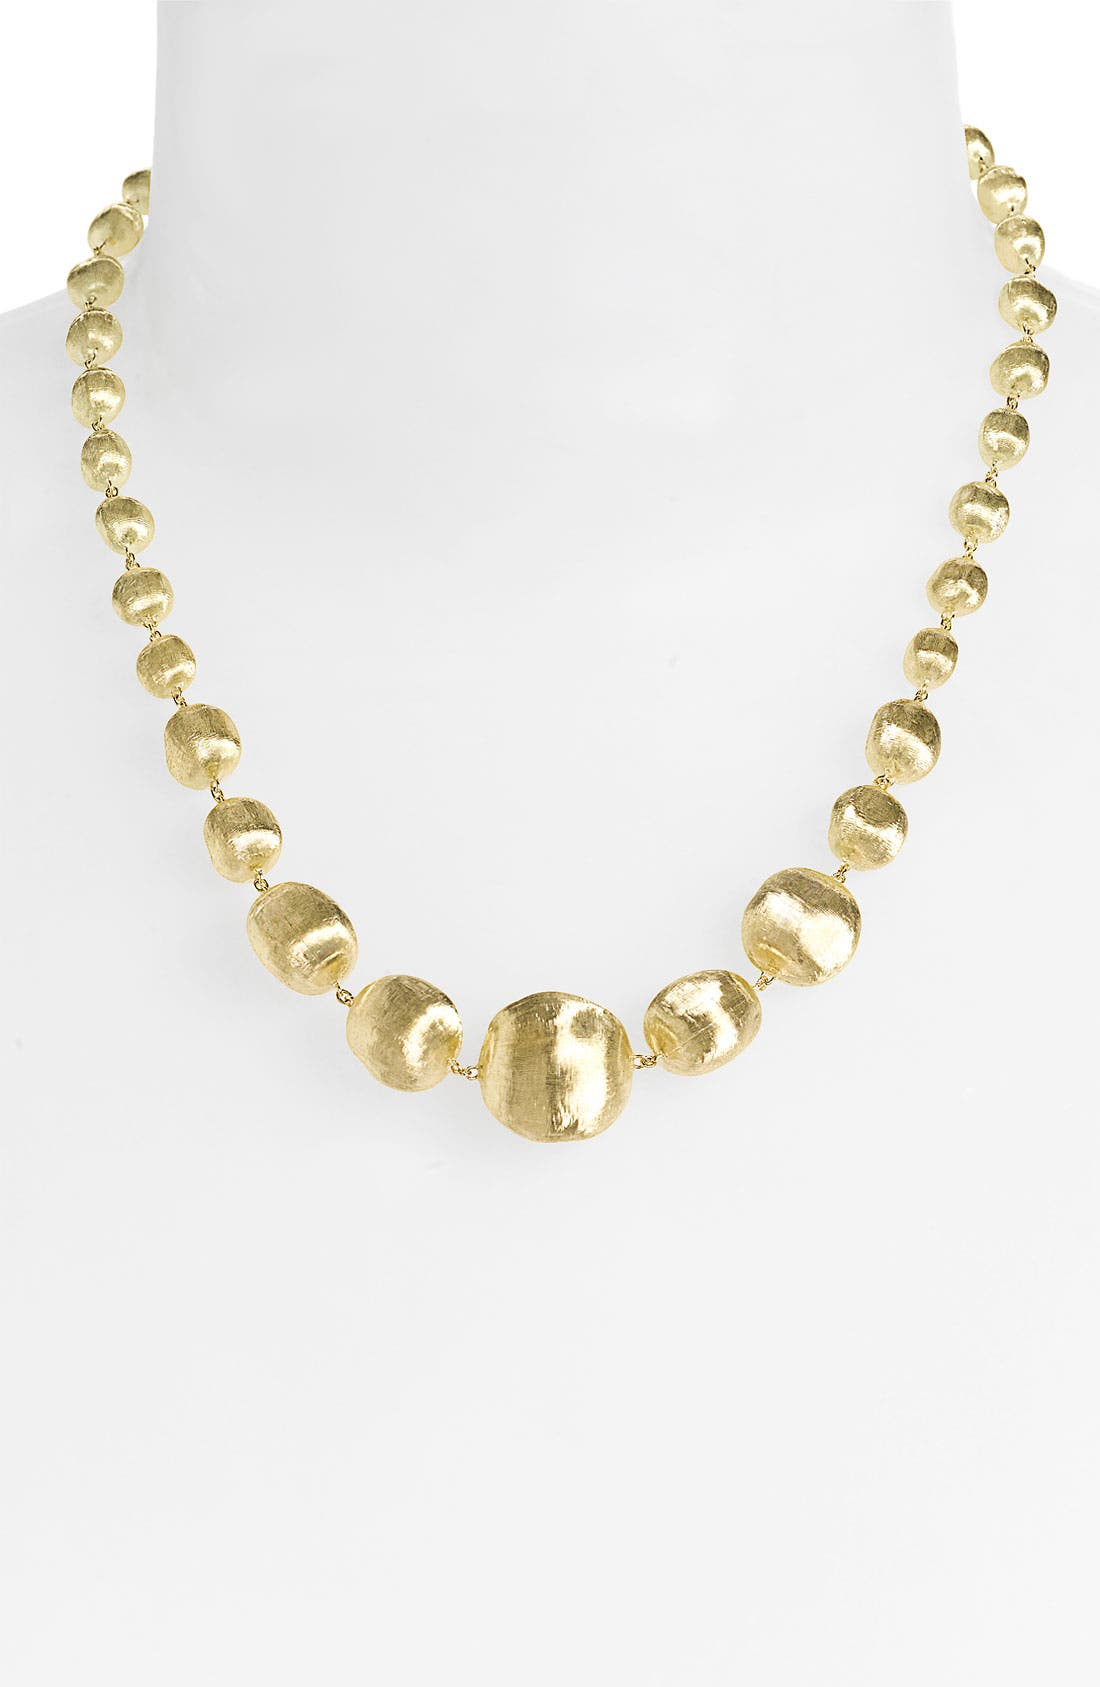 Main Image - Marco Bicego 'Africa Gold' Graduated Necklace